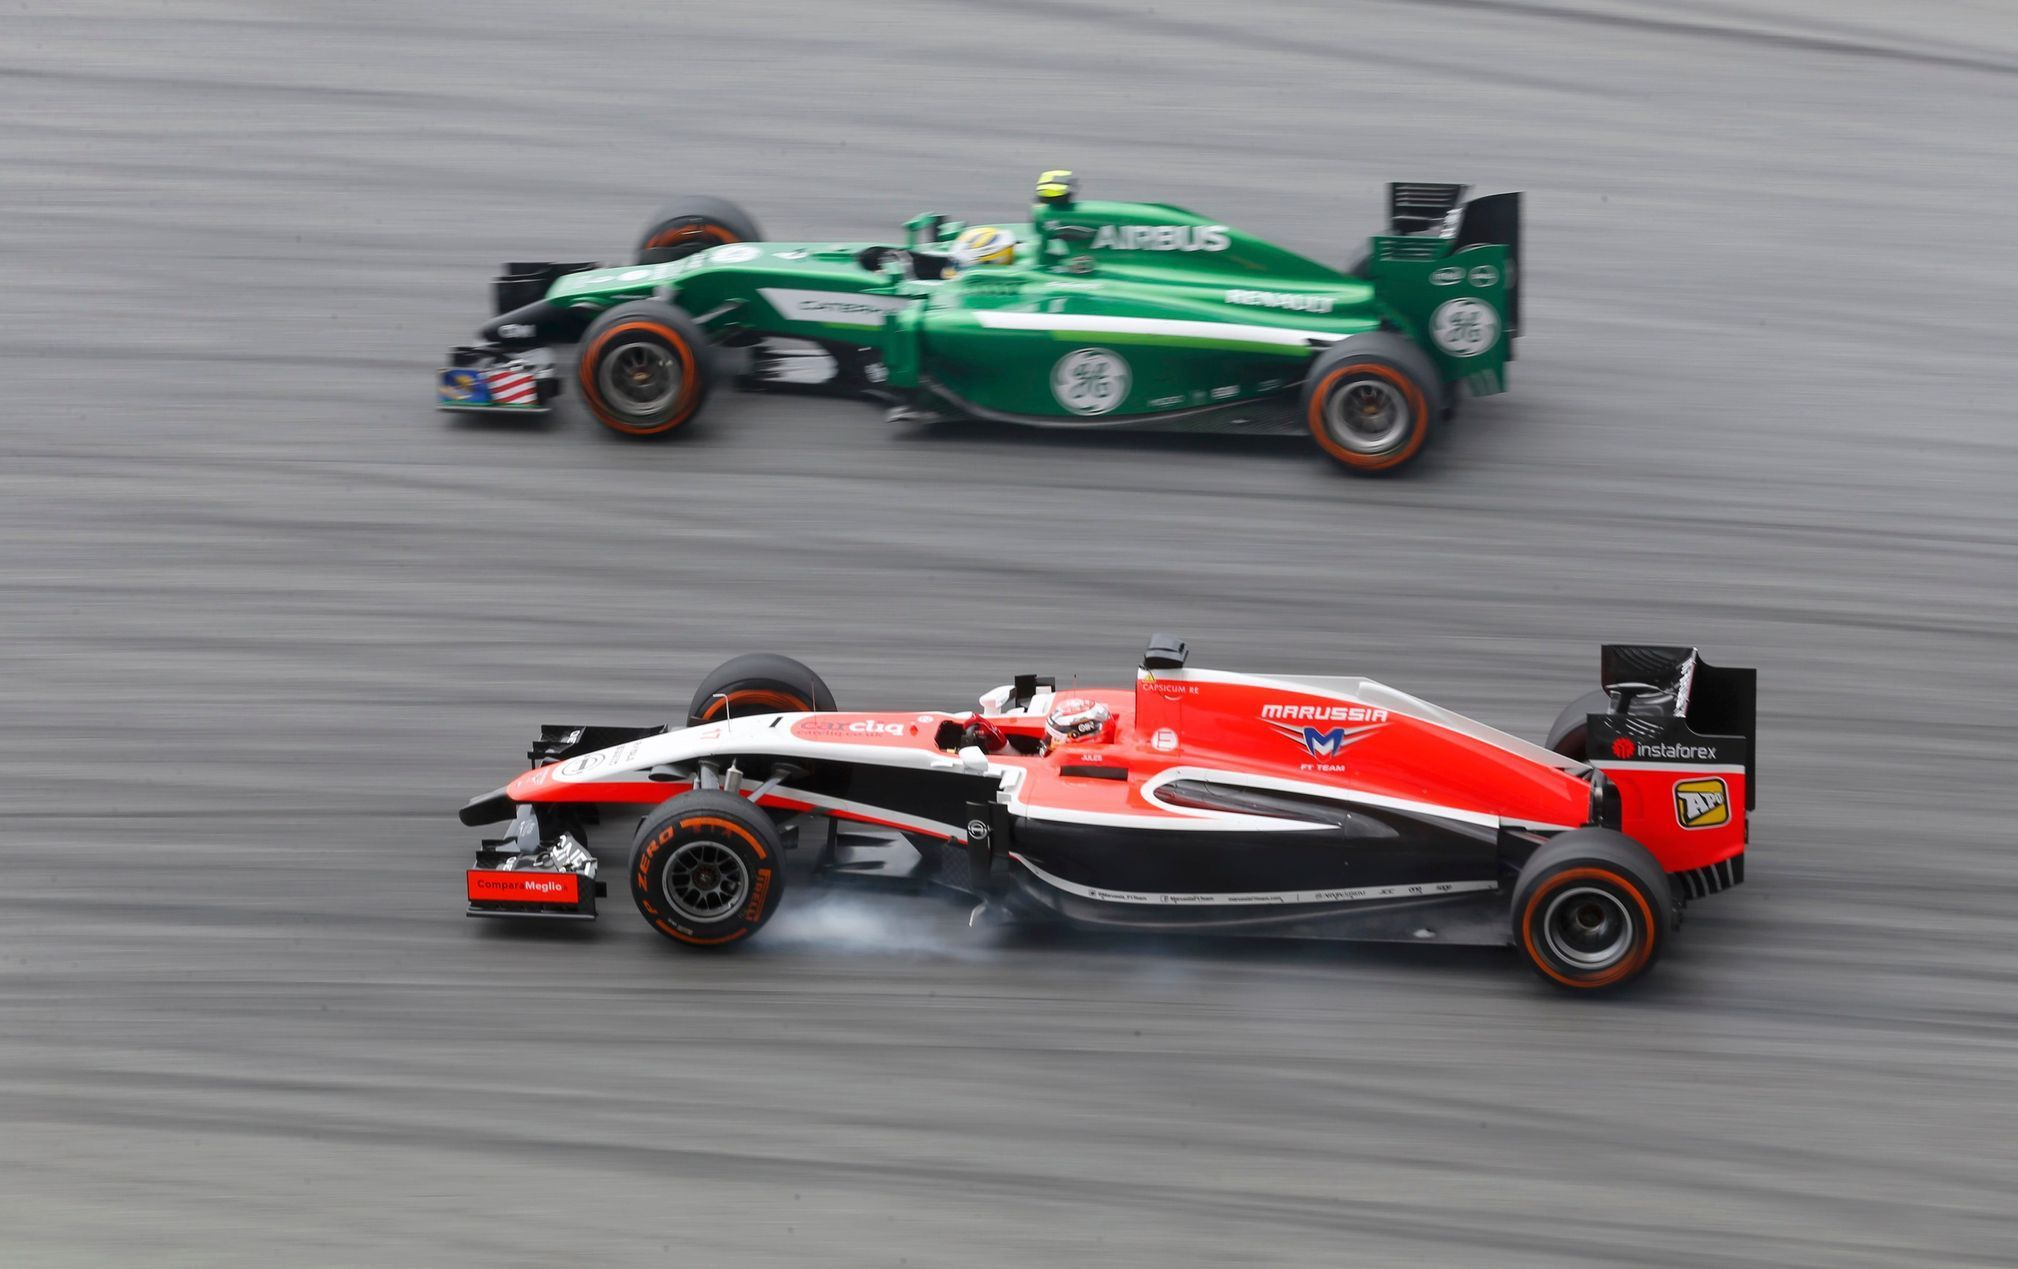 Marussia Formula One driver Bianchi passes Caterham Formula One driver Ericsson during the first practice session of the Malaysian F1 Grand Prix at Sepang International Circuit outside Kuala Lumpur